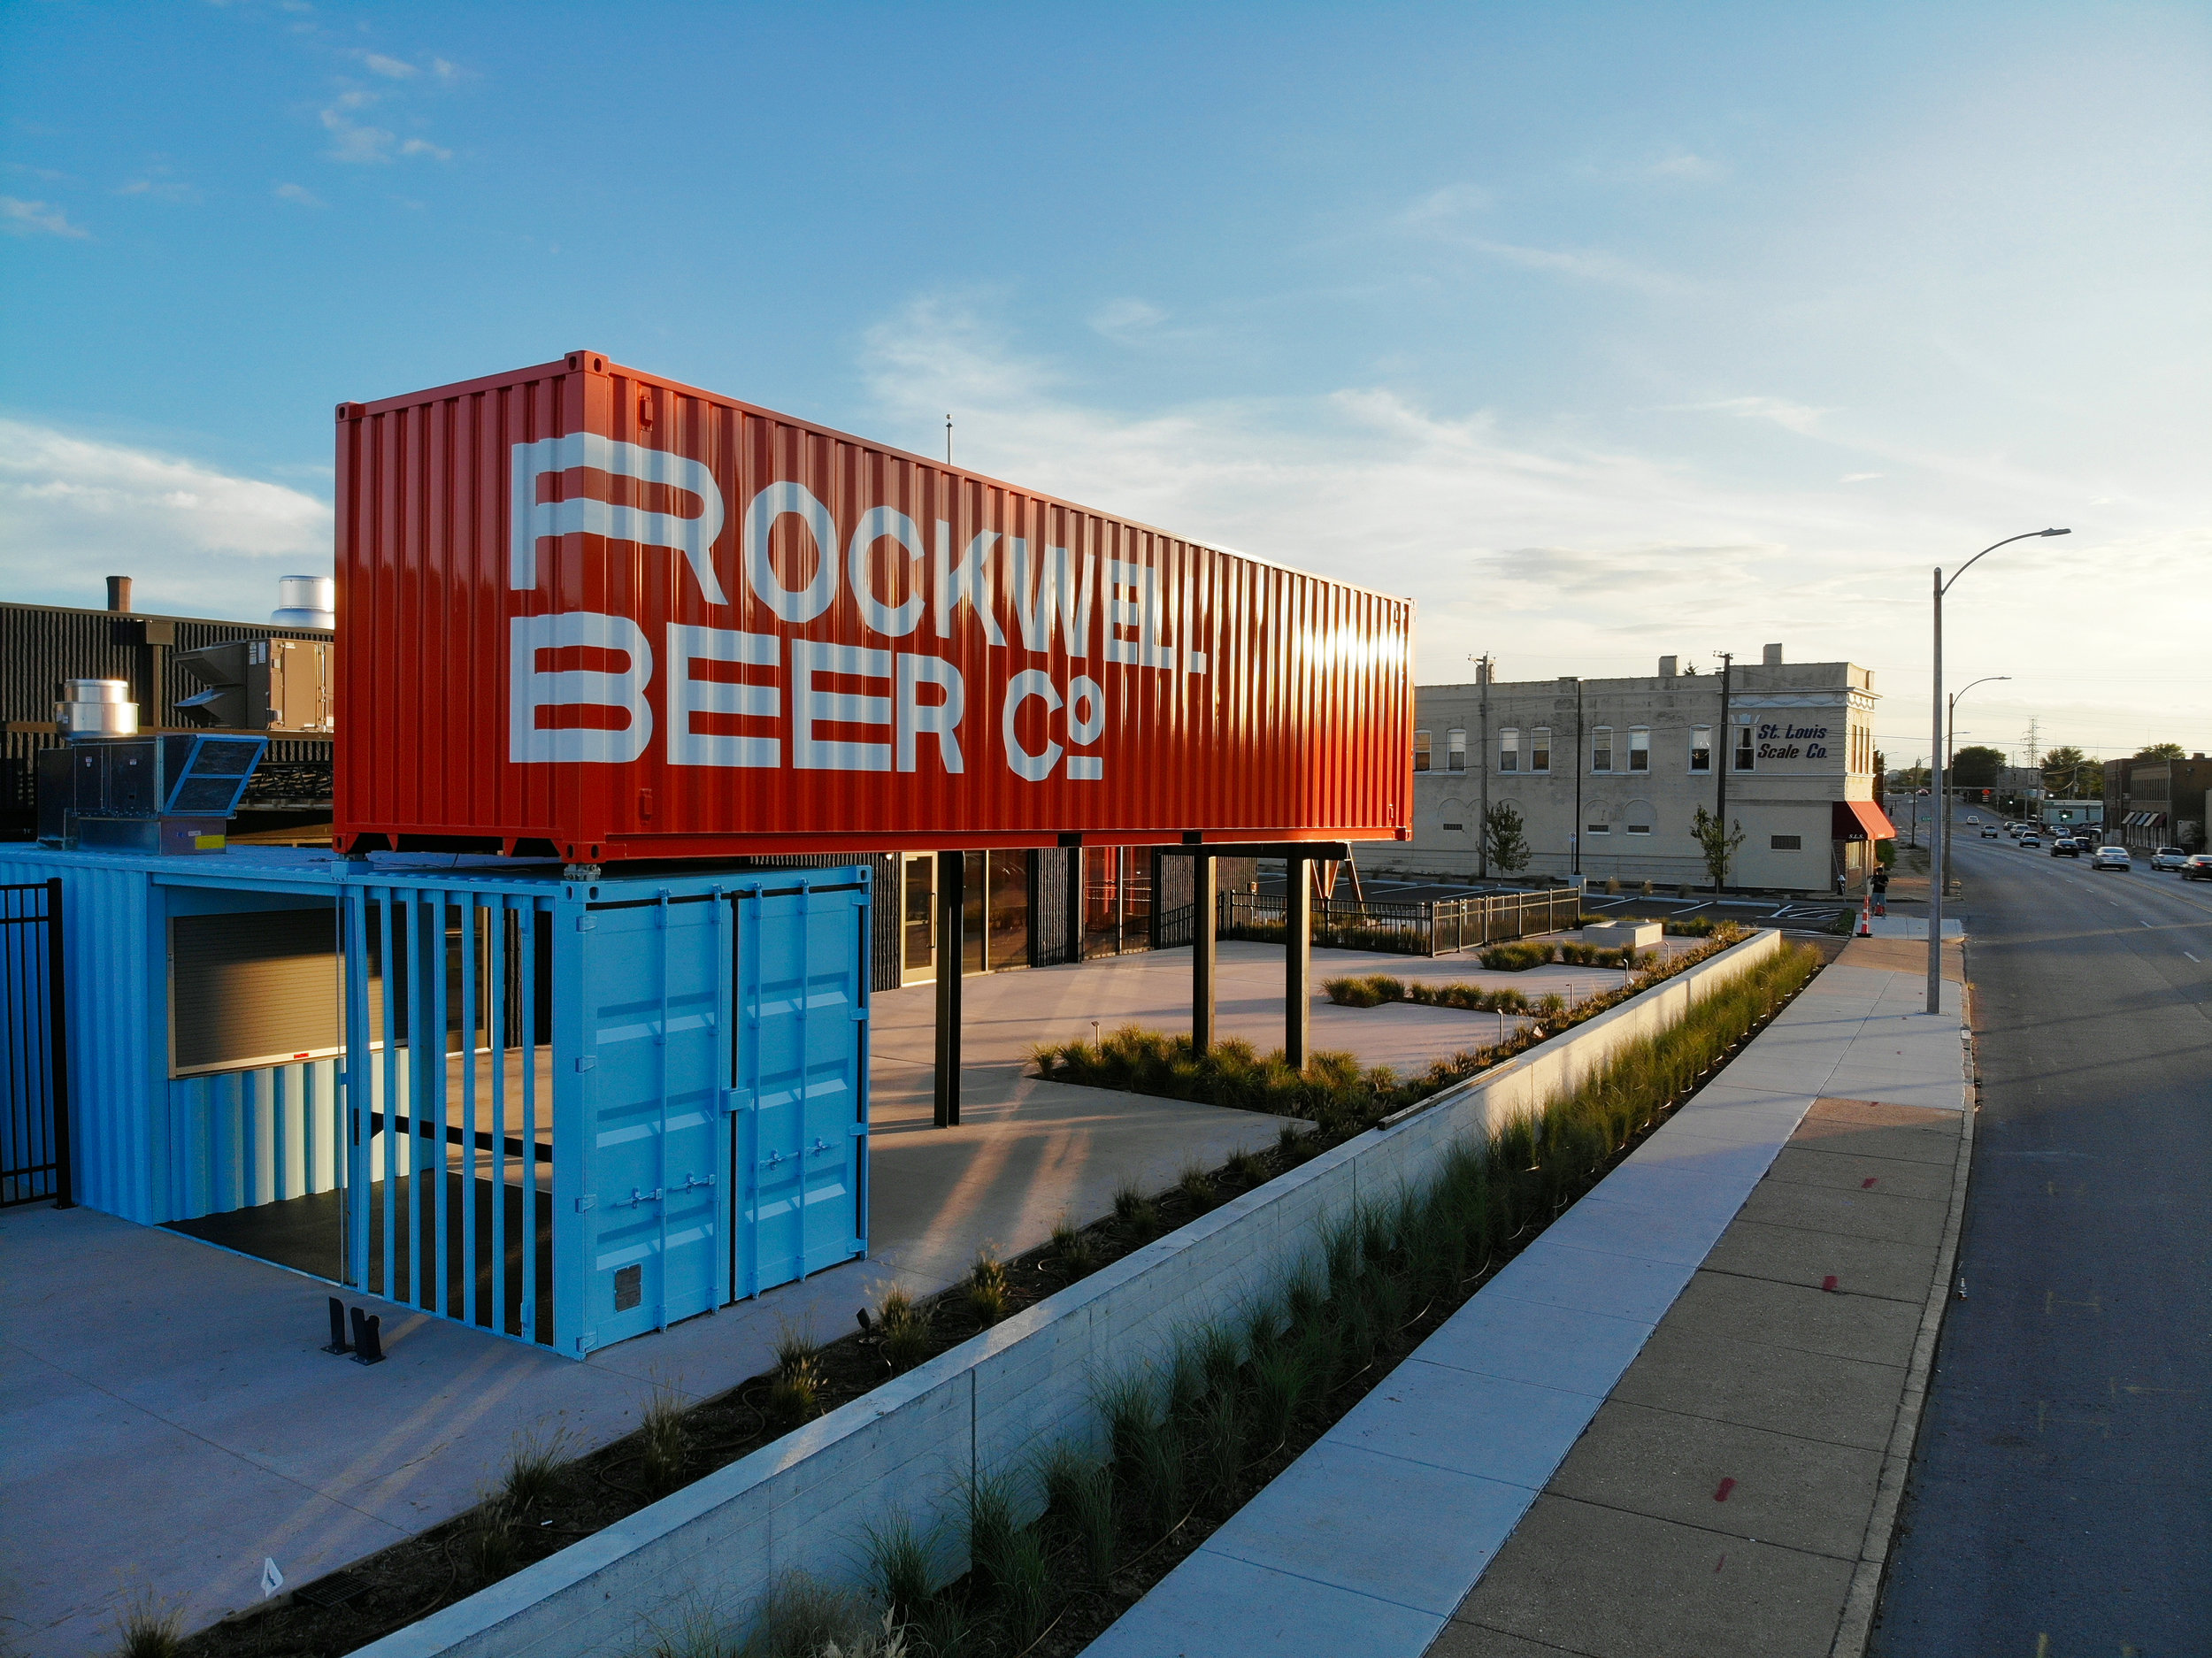 ROCKWELL BEER COMPANY